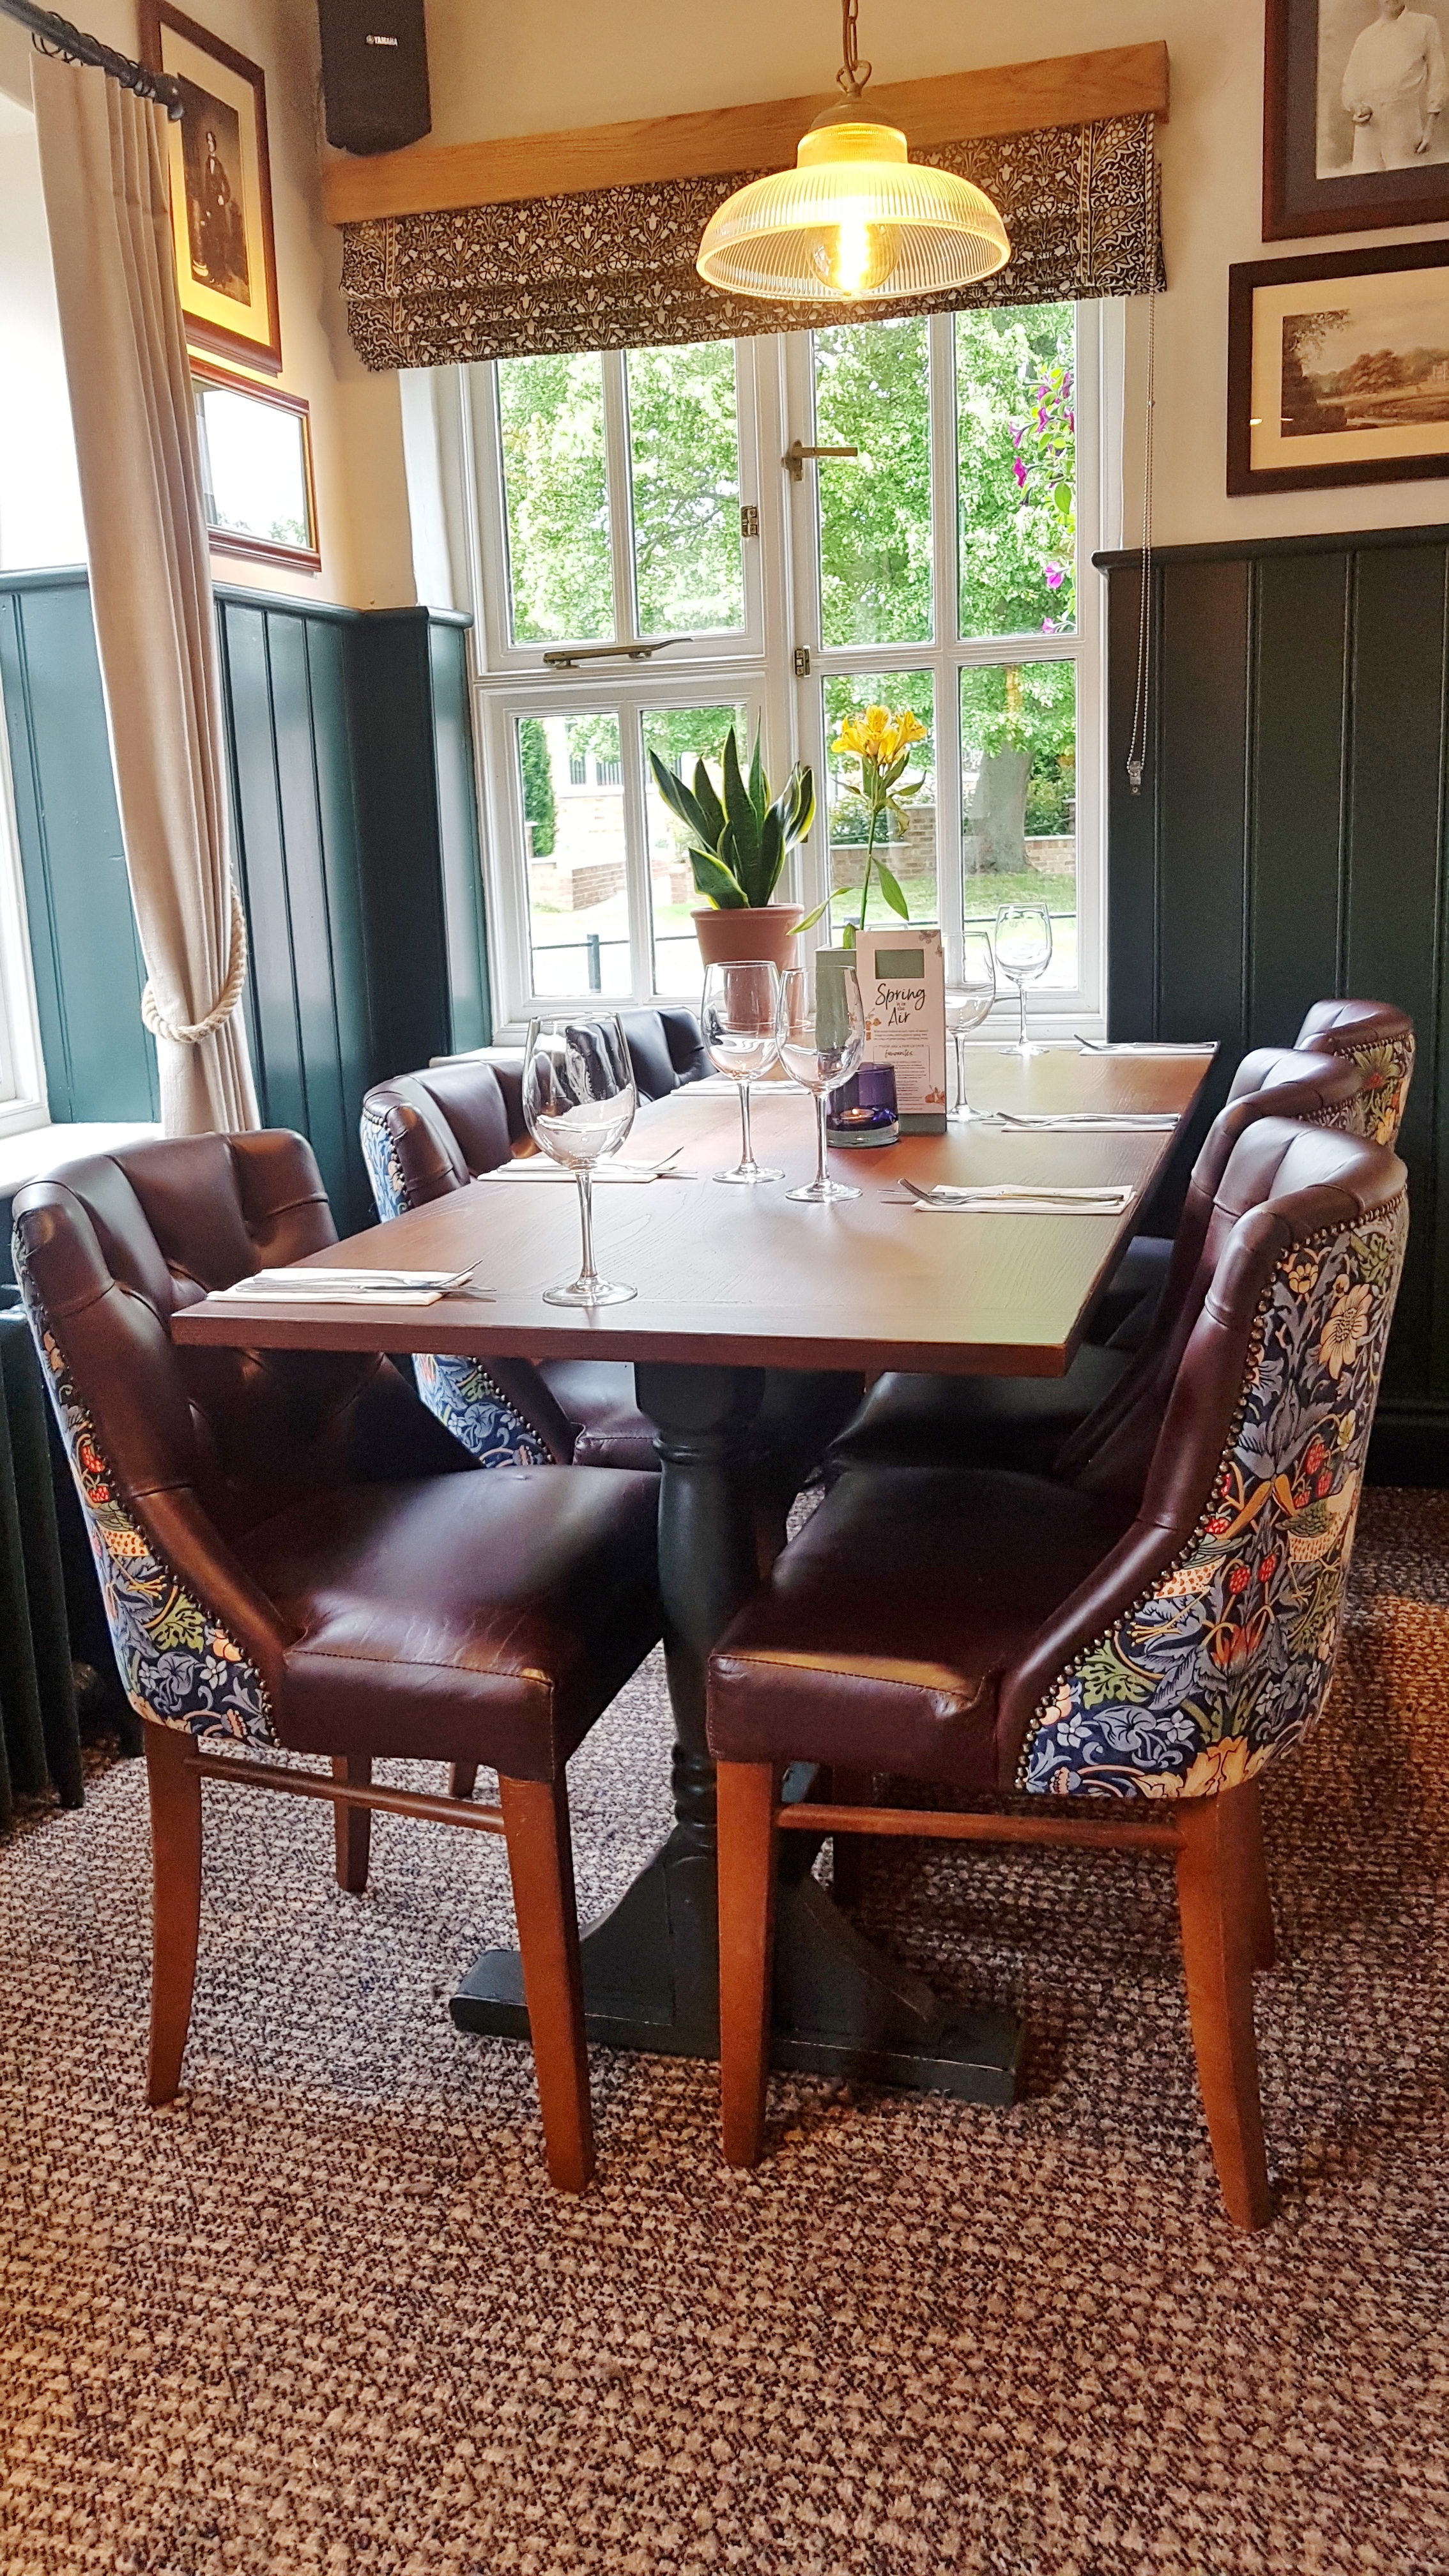 Review: The Five Bells, Weston Turville